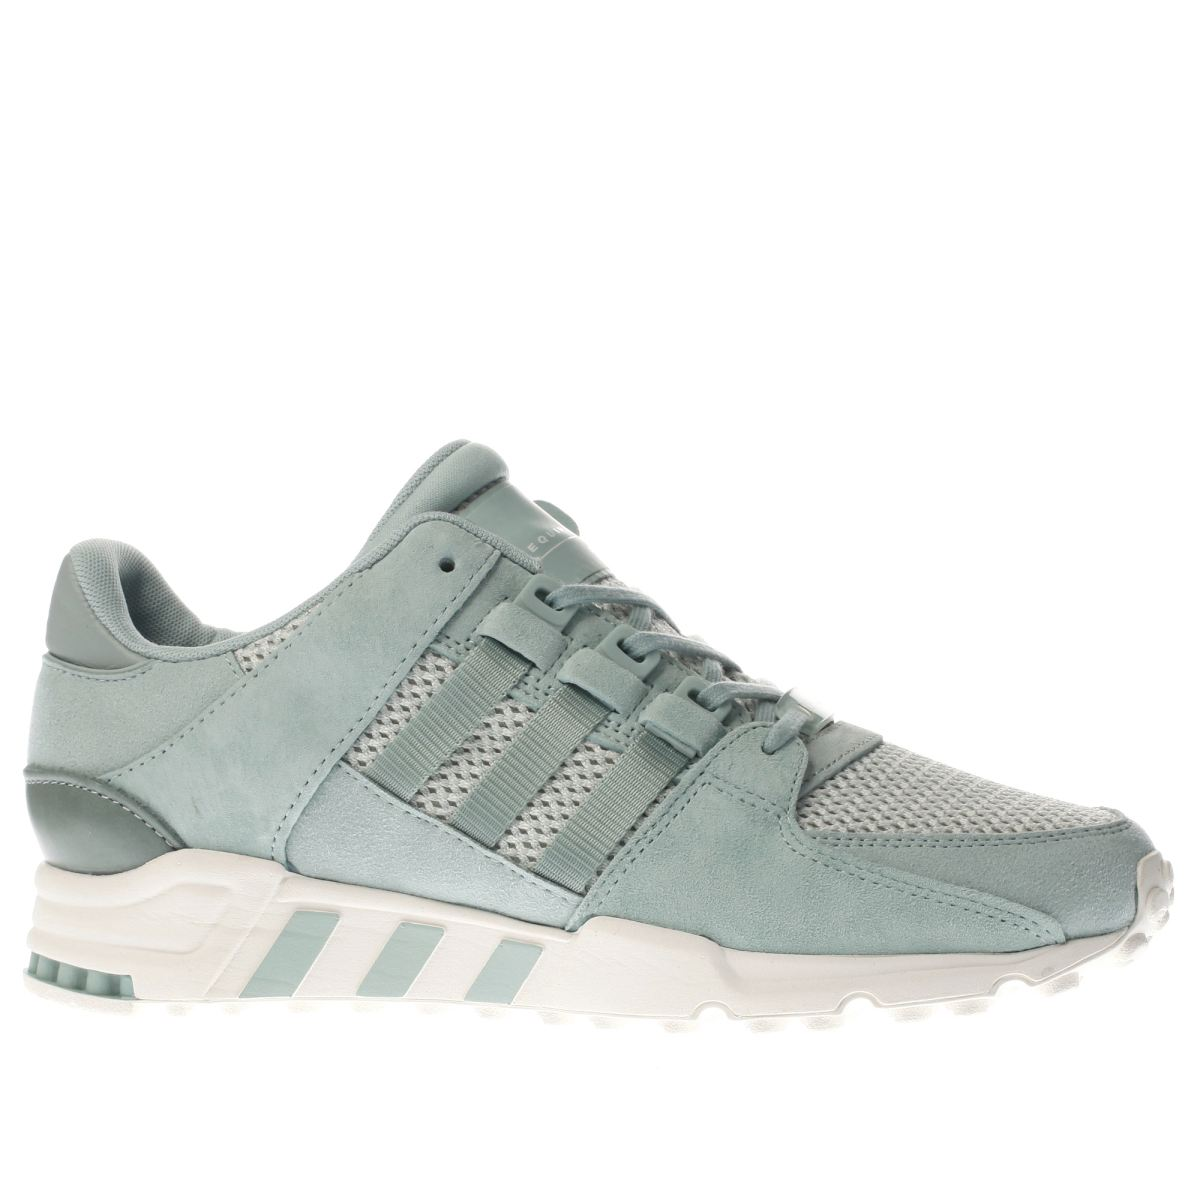 adidas light teal eqt support rf trainers